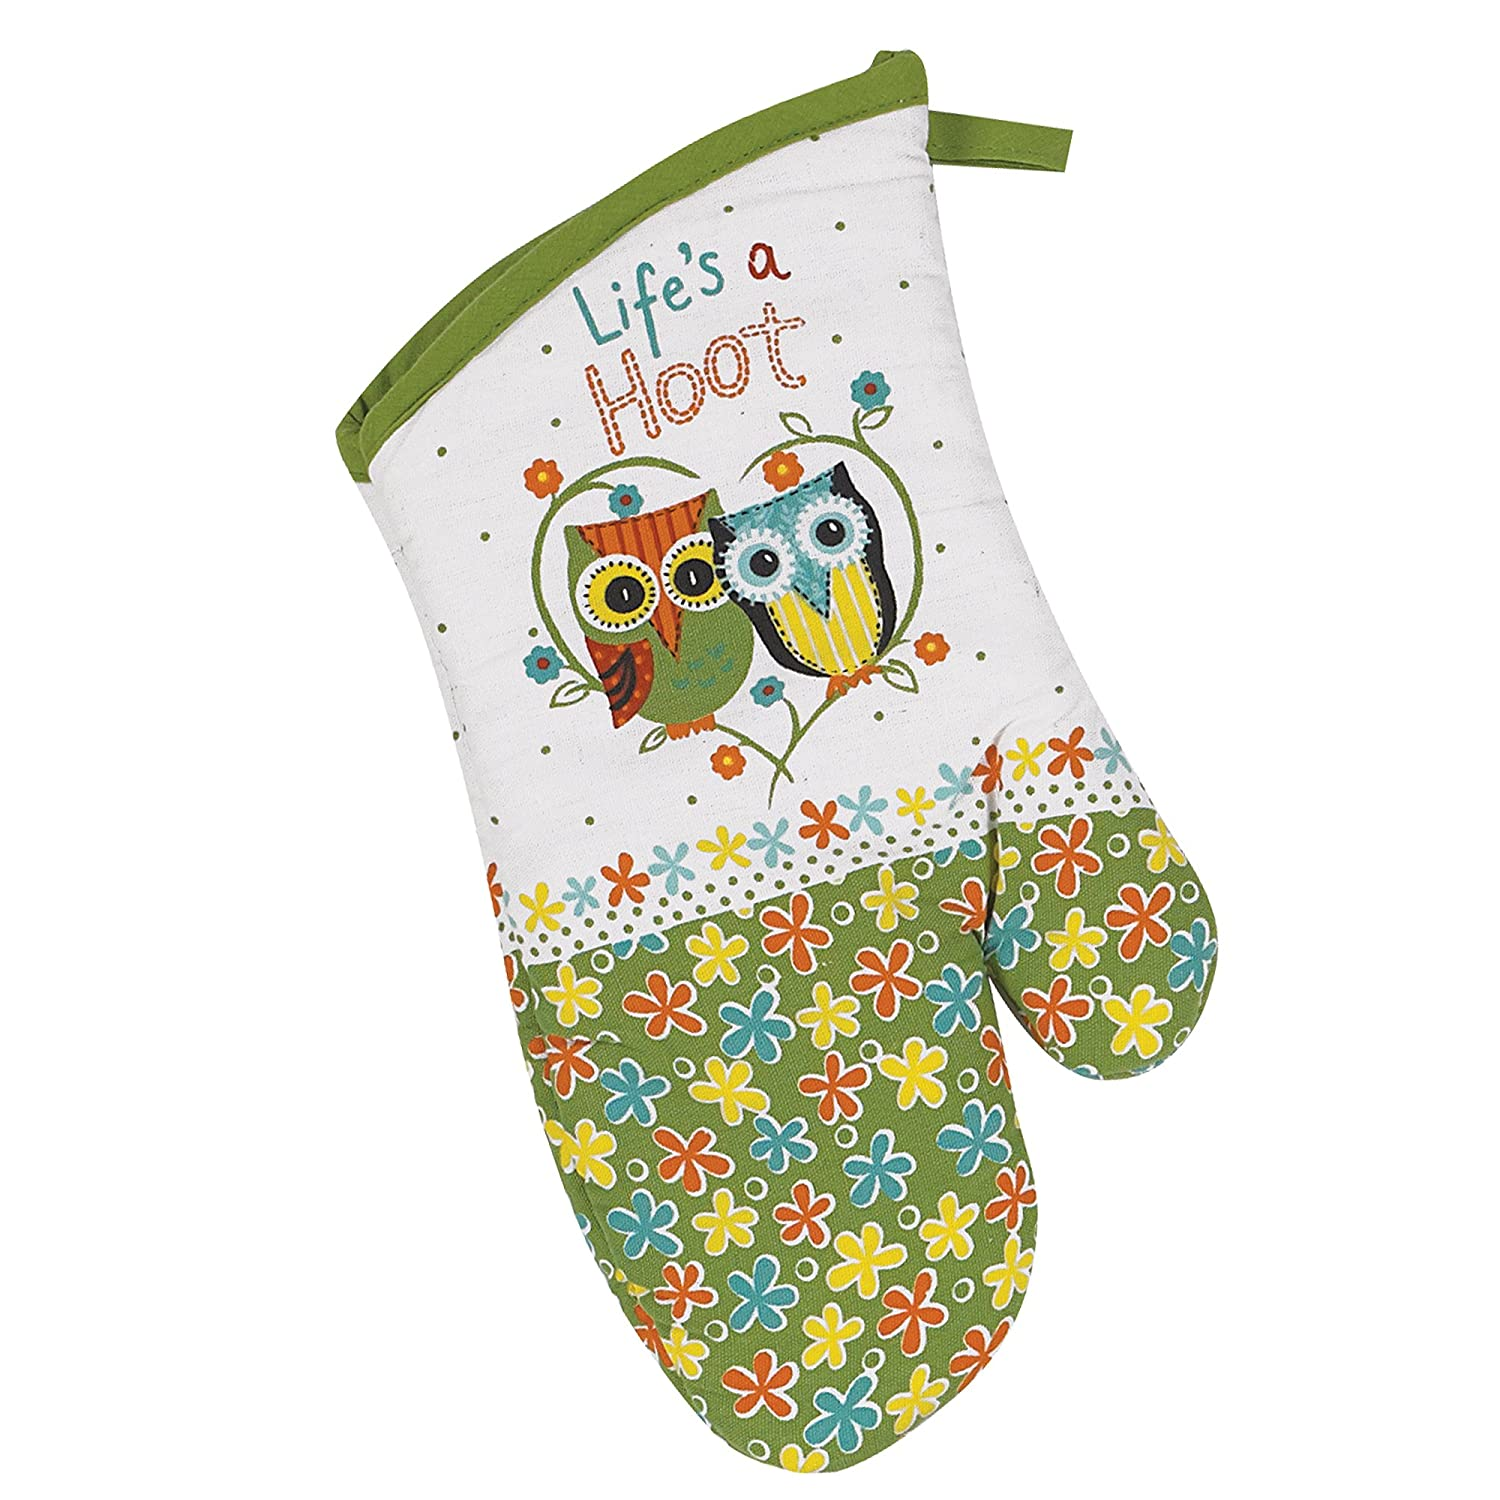 Kay Dee Designs Cotton Oven Mitt, Life's A Hoot